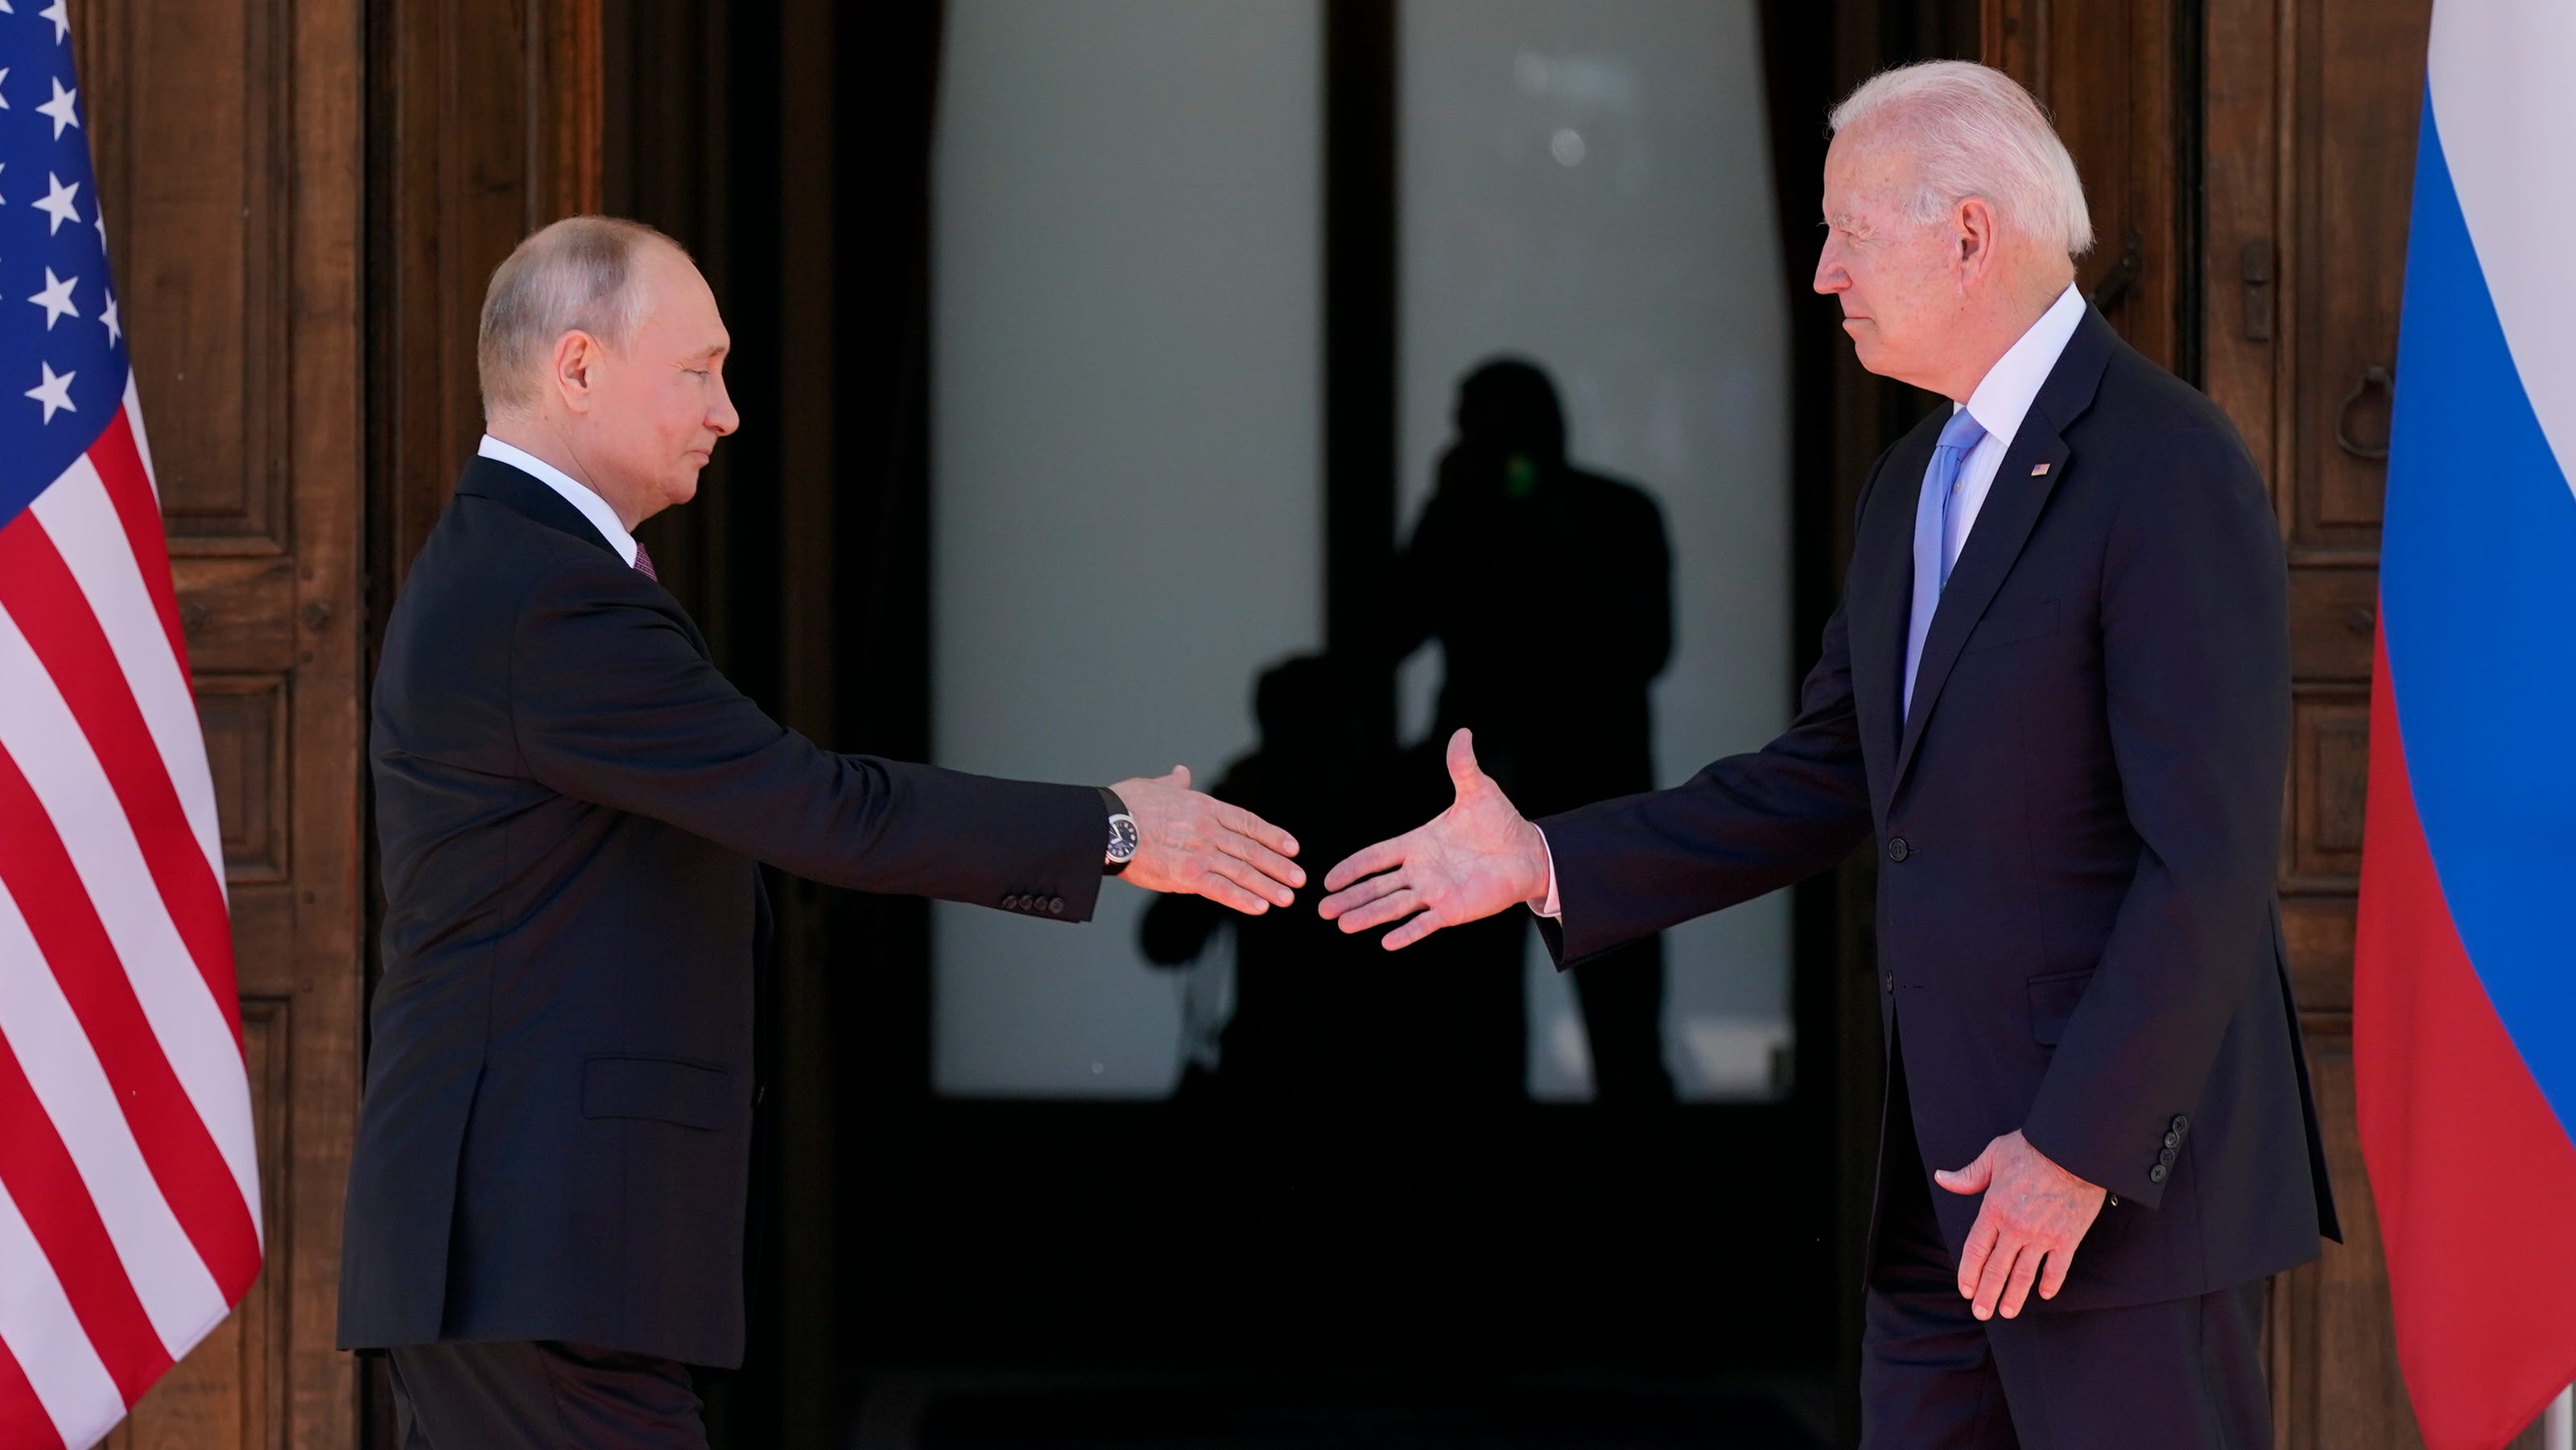 Can Biden trust Putin? From on-time arrivals to a slow start, takeaways from Geneva summit